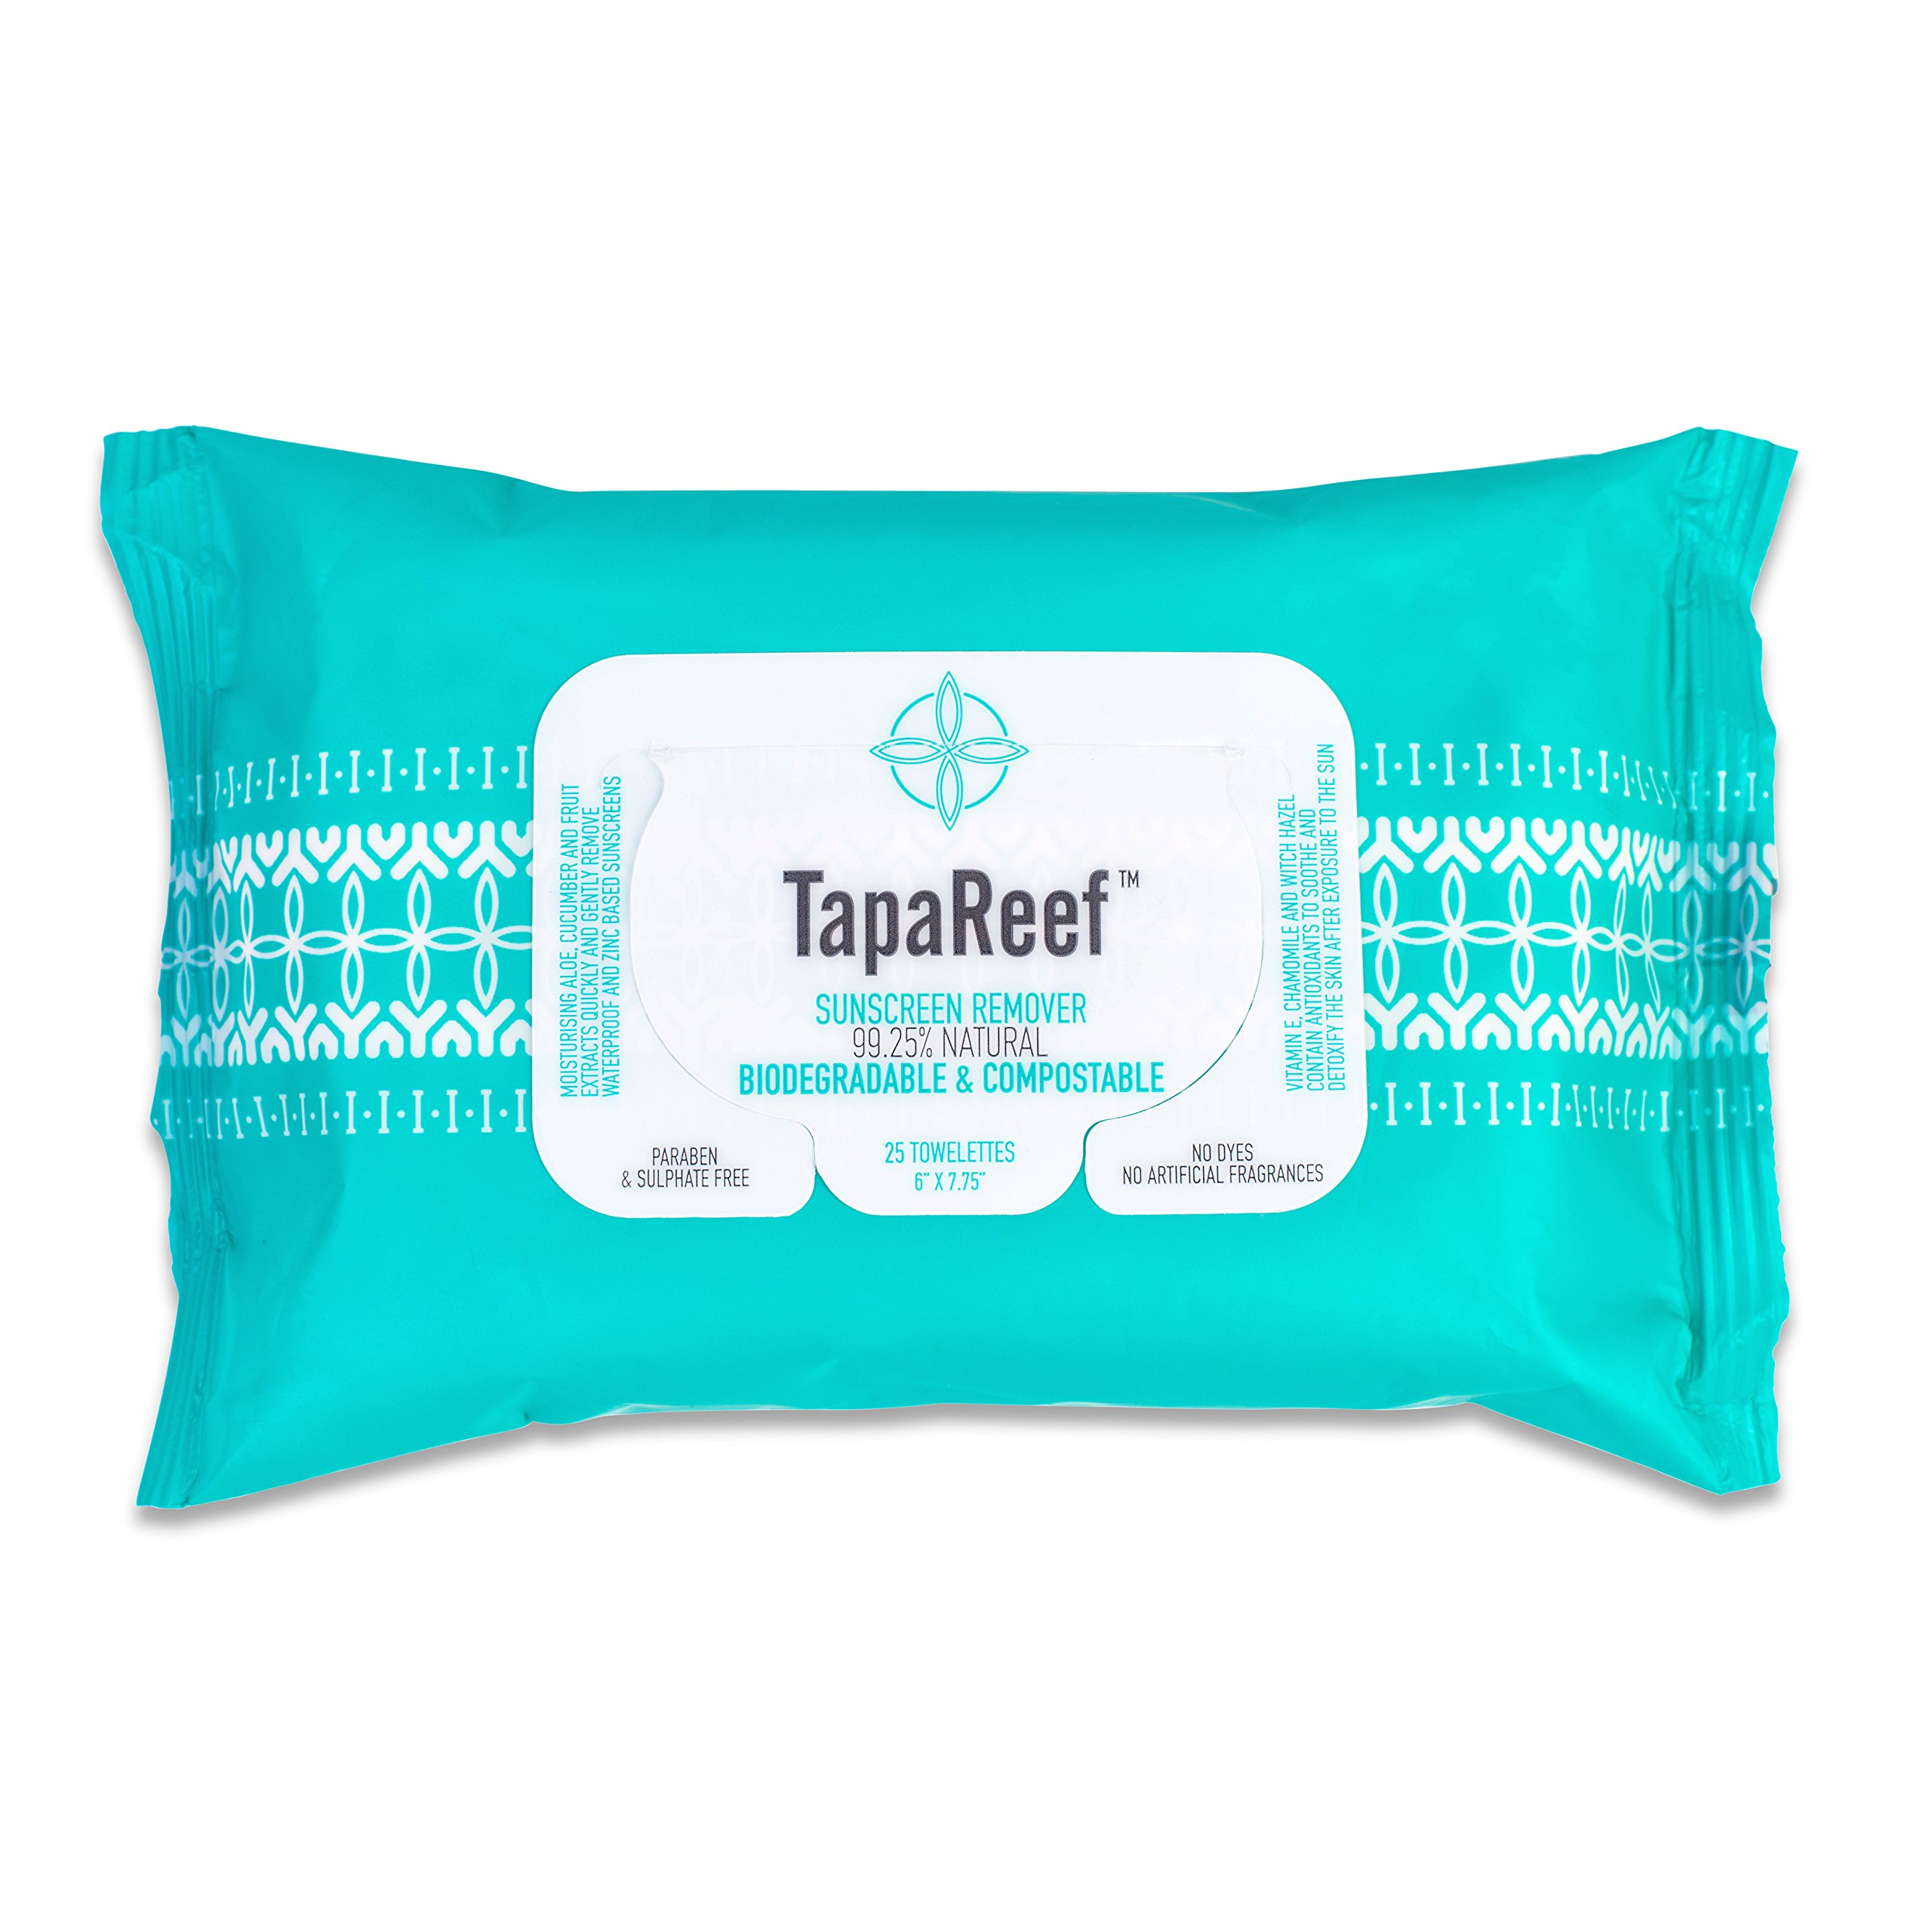 TapaReef Sunscreen Remover Wipes - 25 Count Pouch - 4 Pack